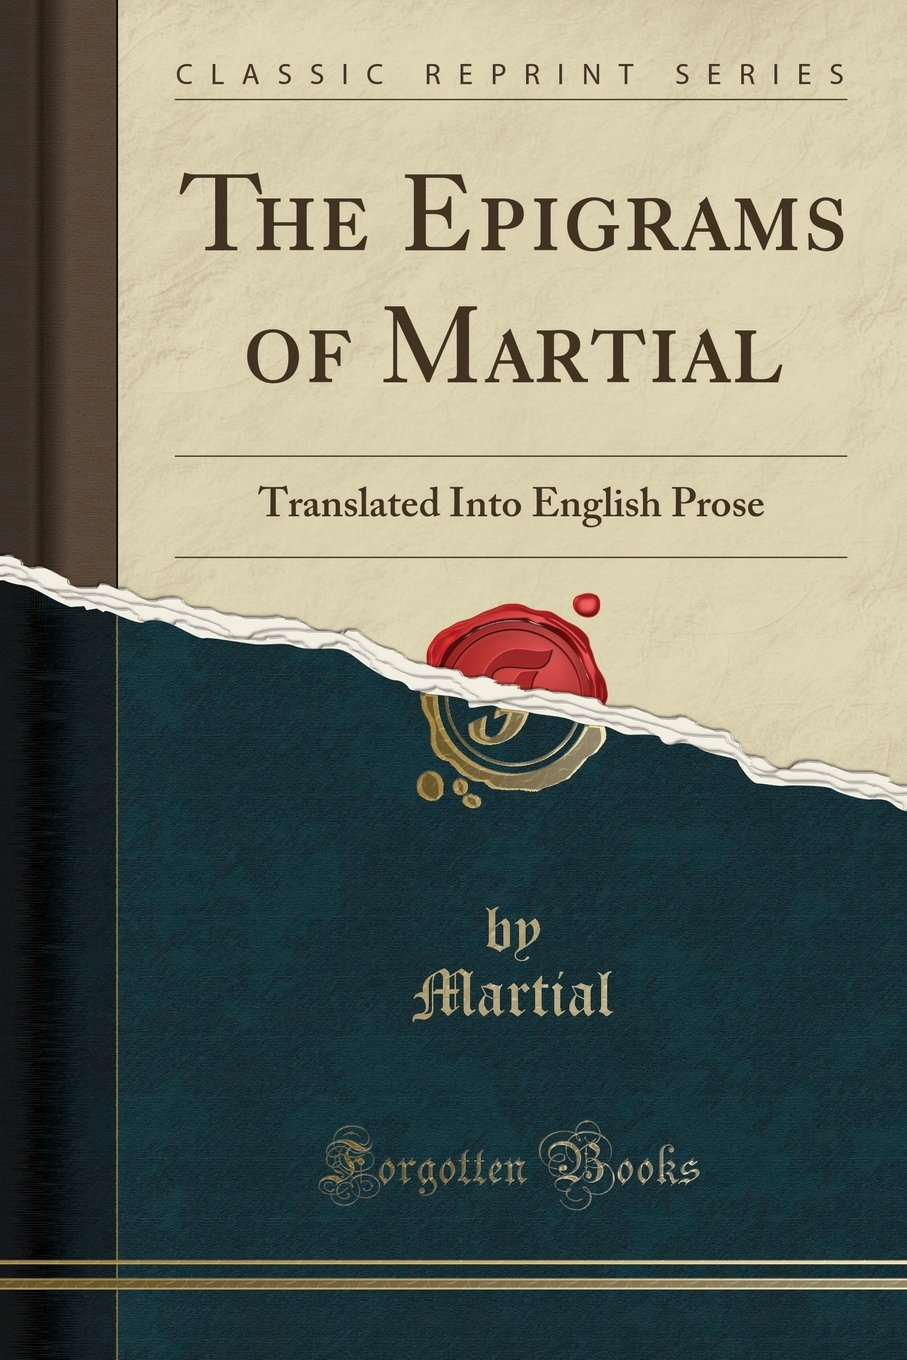 The Epigrams of Martial (Translated)